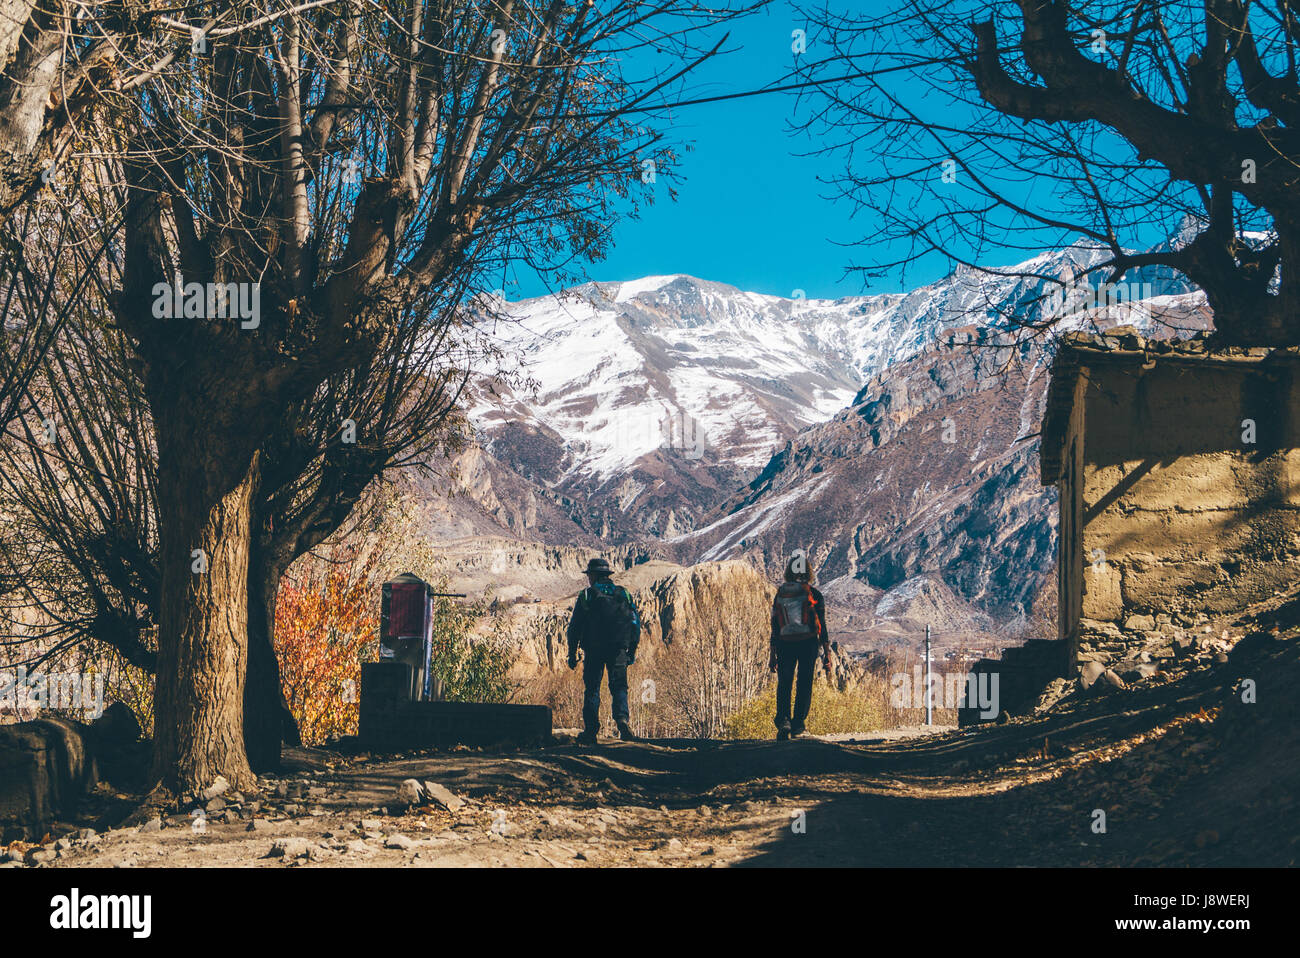 Trekkers walking through a row of dried trees during autumn in the Himalayan mountains of Nepal. - Stock Image